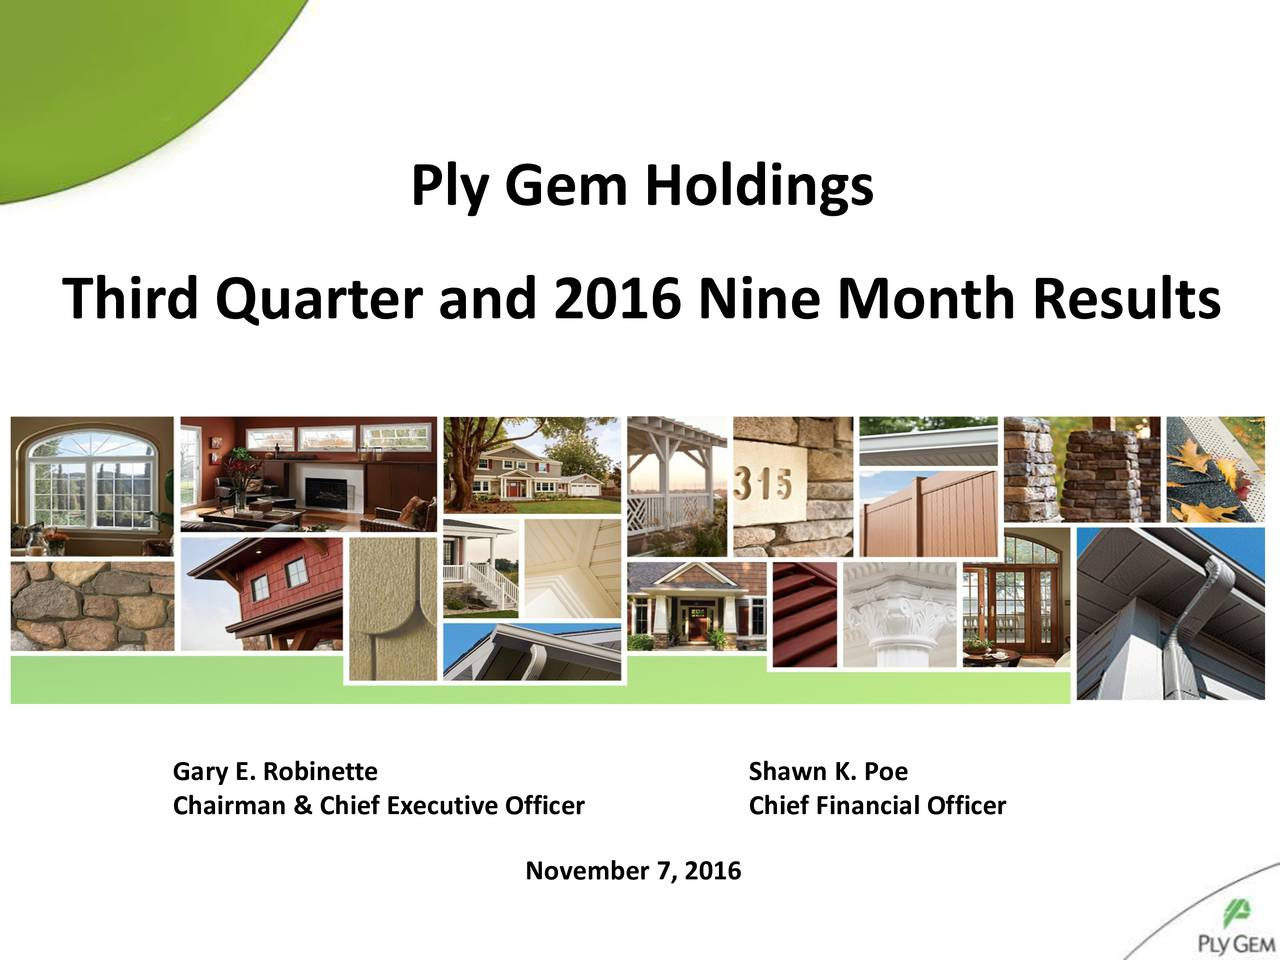 Third Quarter and 2016 Nine Month Results Gary E. Robinette Shawn K. Poe Chairman & Chief Executive Officer Chief Financial Officer November 7, 2016